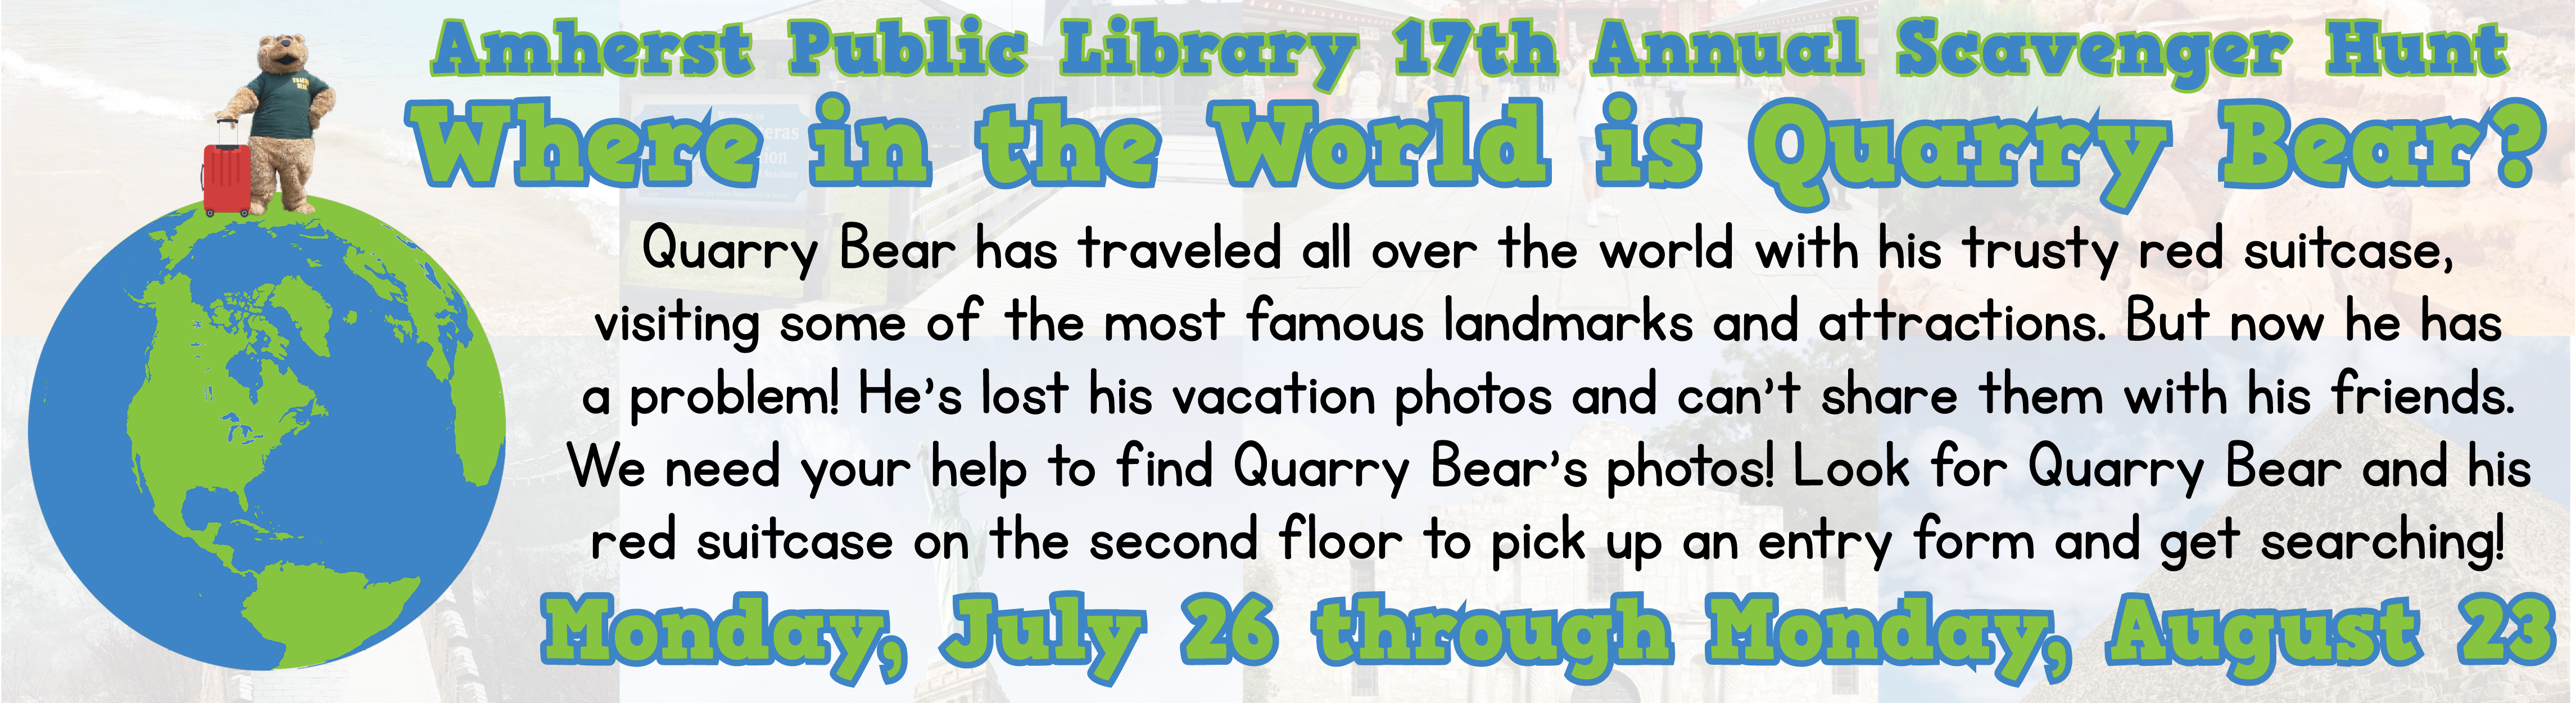 Where in the World is Quarry Bear?